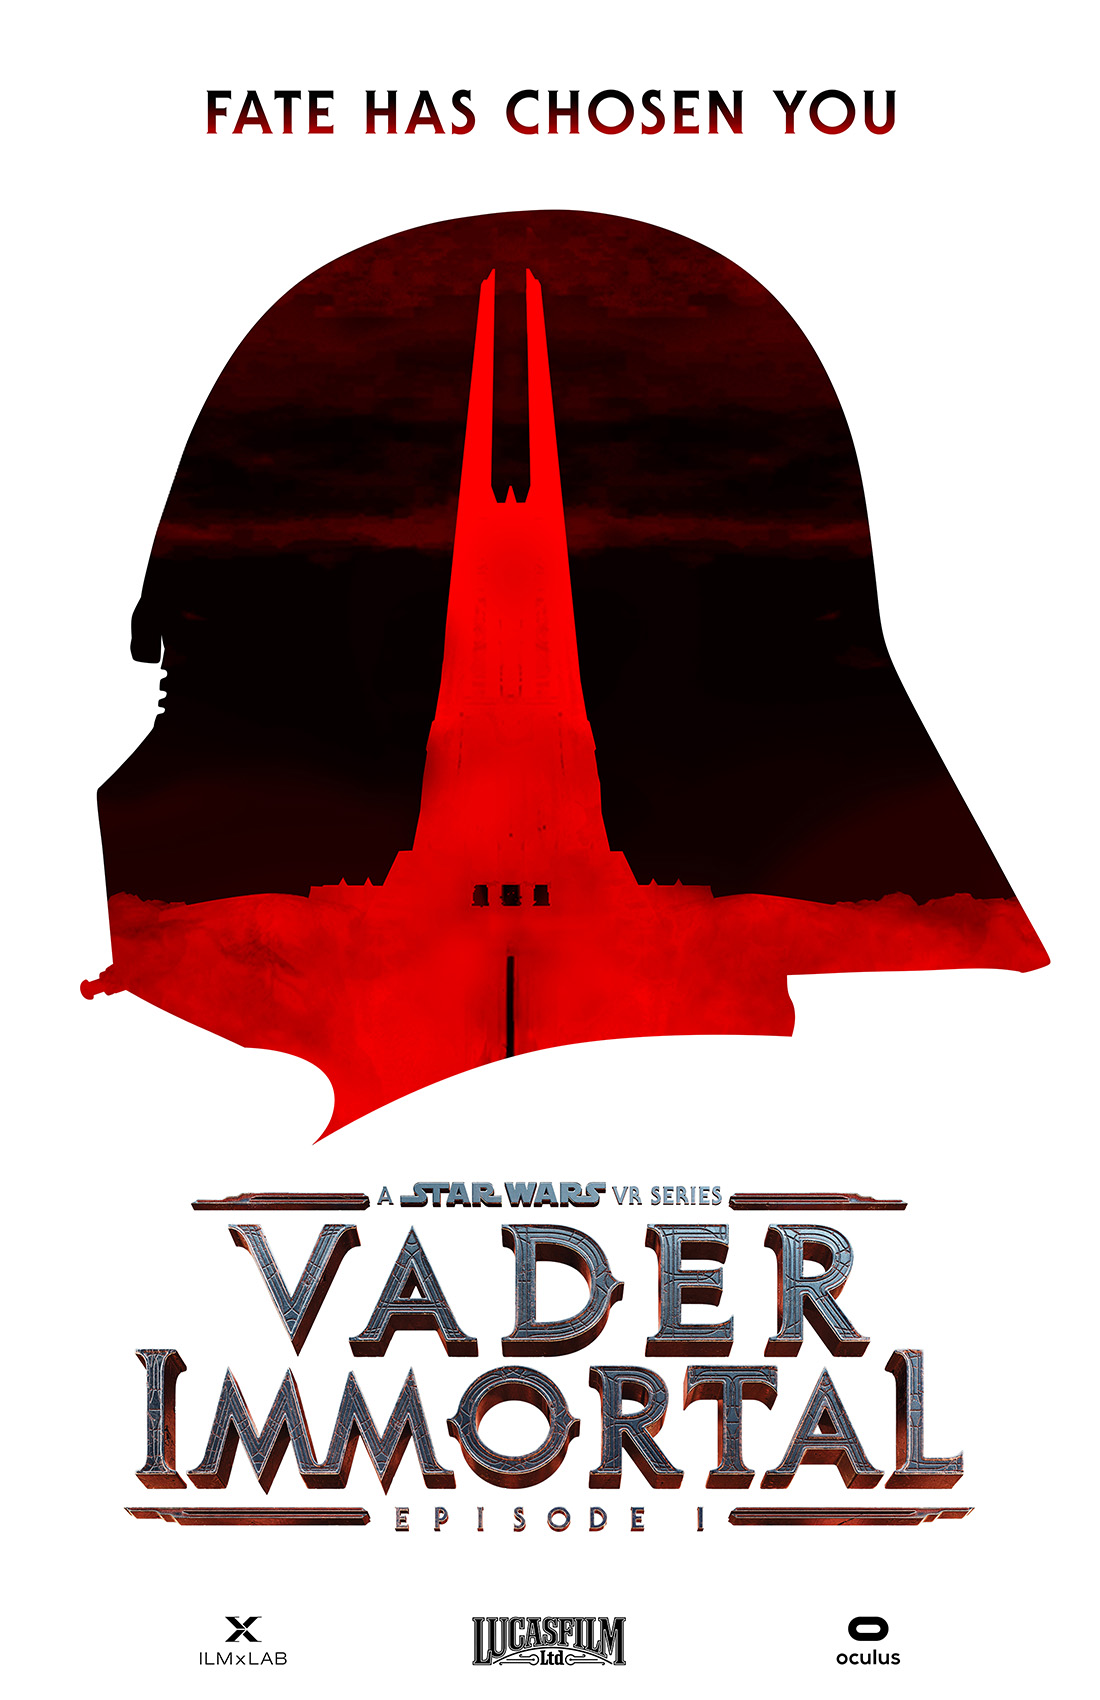 A poster from Vader Immortal.